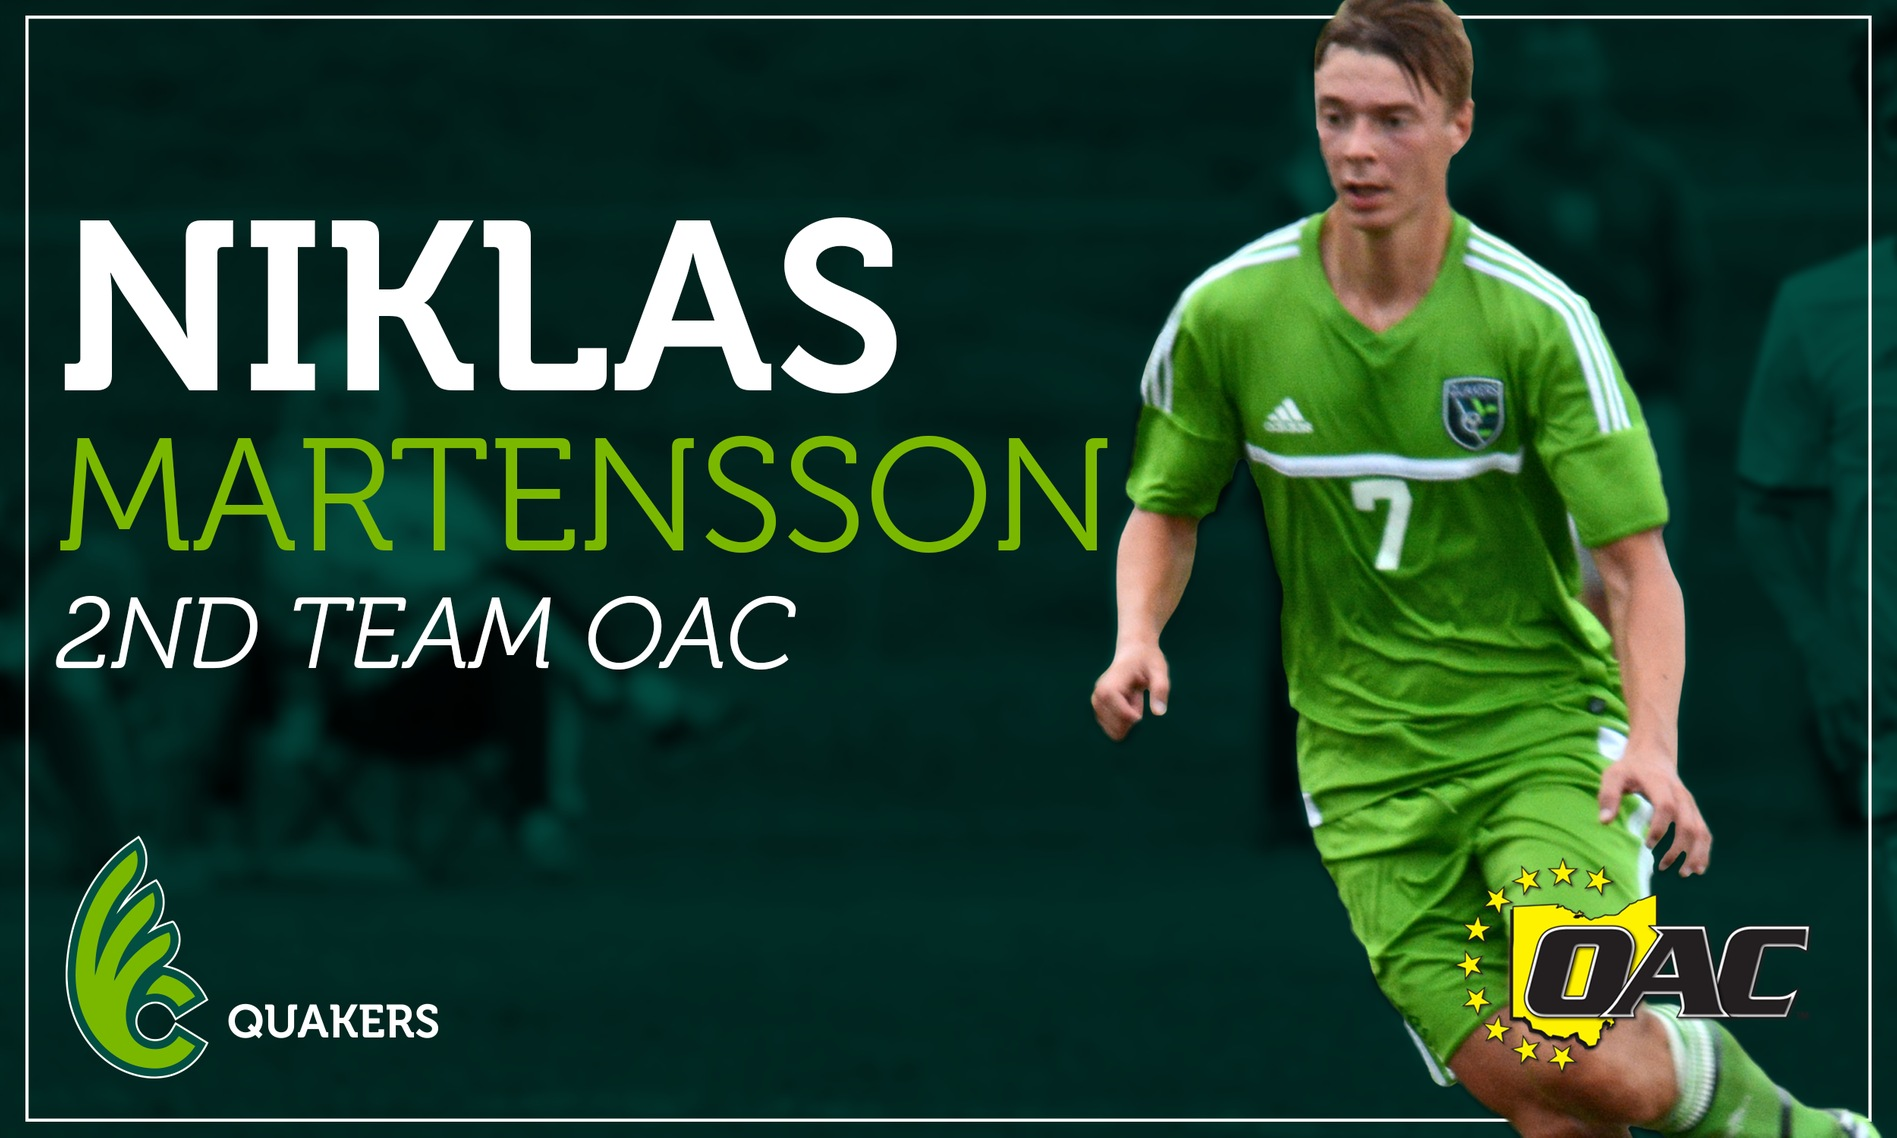 Martensson earns All-OAC honors